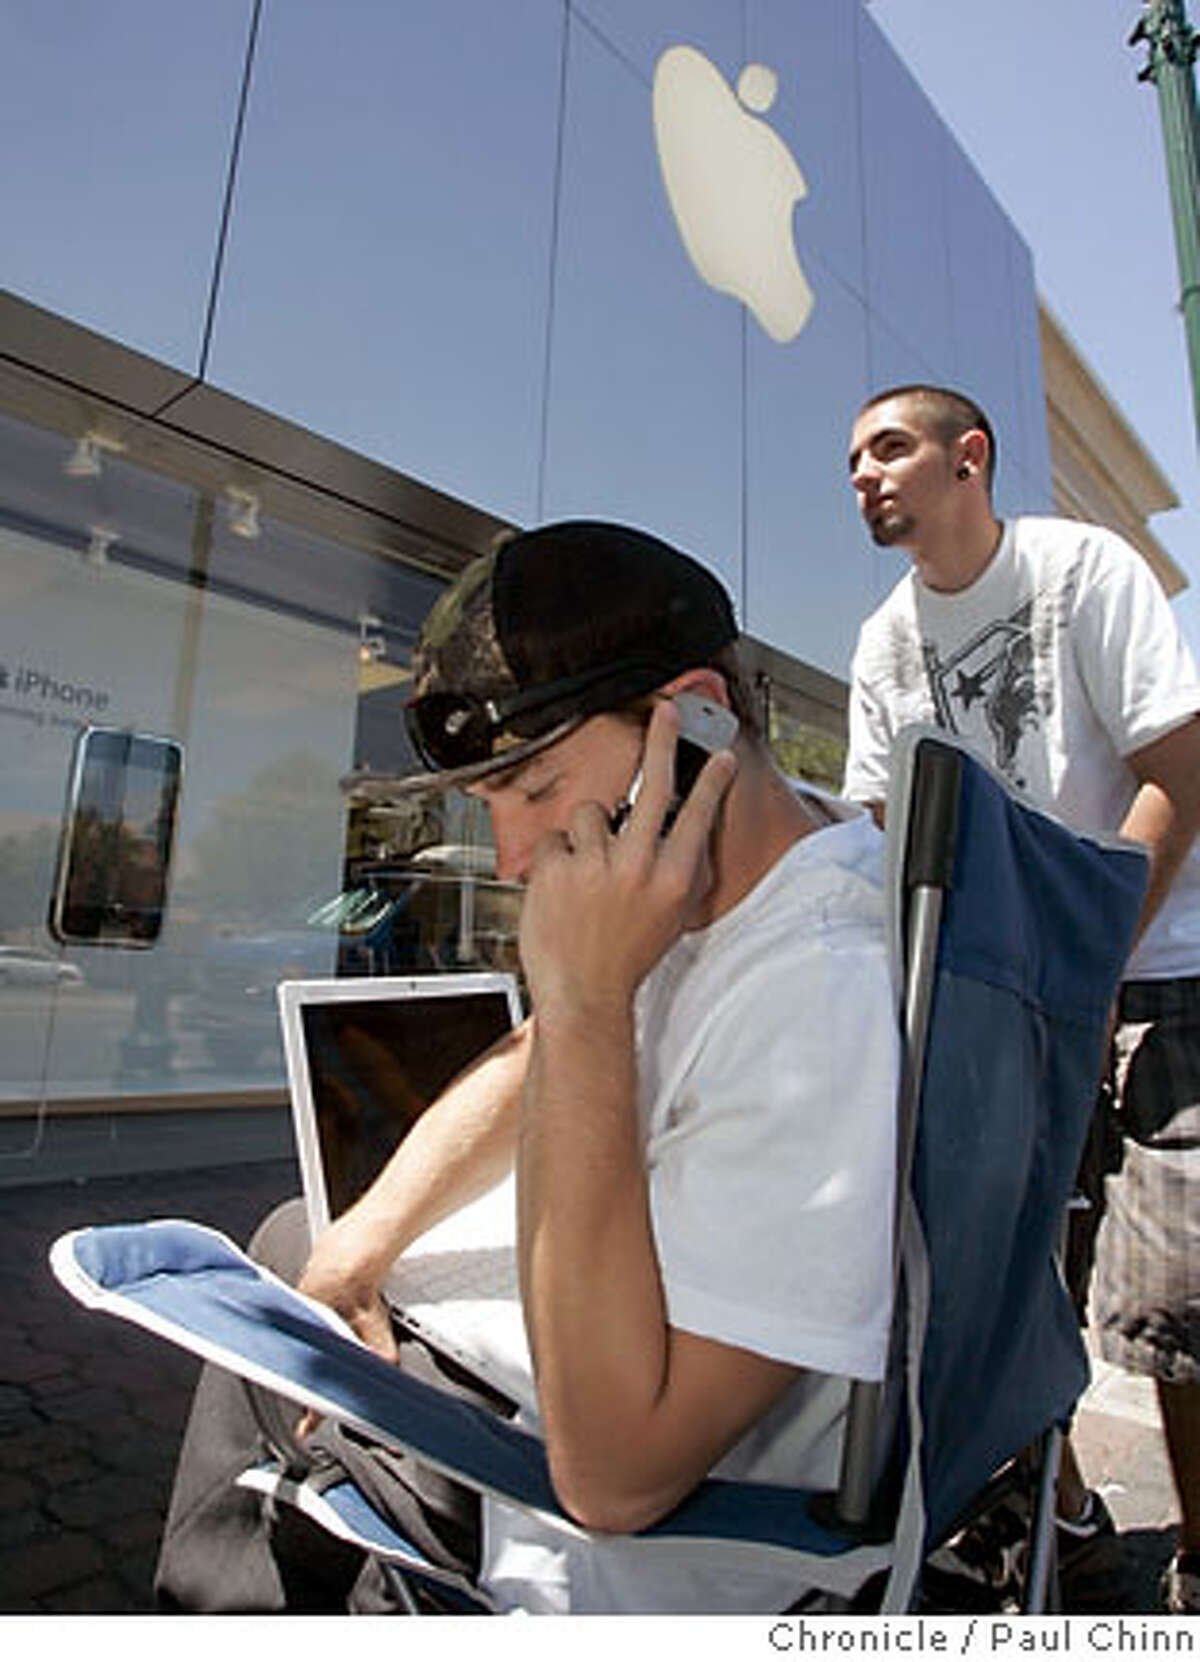 Josh May (on cellphone) and Nick Core were among four high school buddies from Benicia that were first in line to buy the highly anticipated iPhone in Walnut Creek, Calif. on Wednesday, June 27, 2007 when it goes on sale Friday at the Apple Store. The group hopes to sell the first two spots in line and then purchase up to five iPhones to sell on eBay and earn money for college. PAUL CHINN/The Chronicle **Josh May, Nick Core